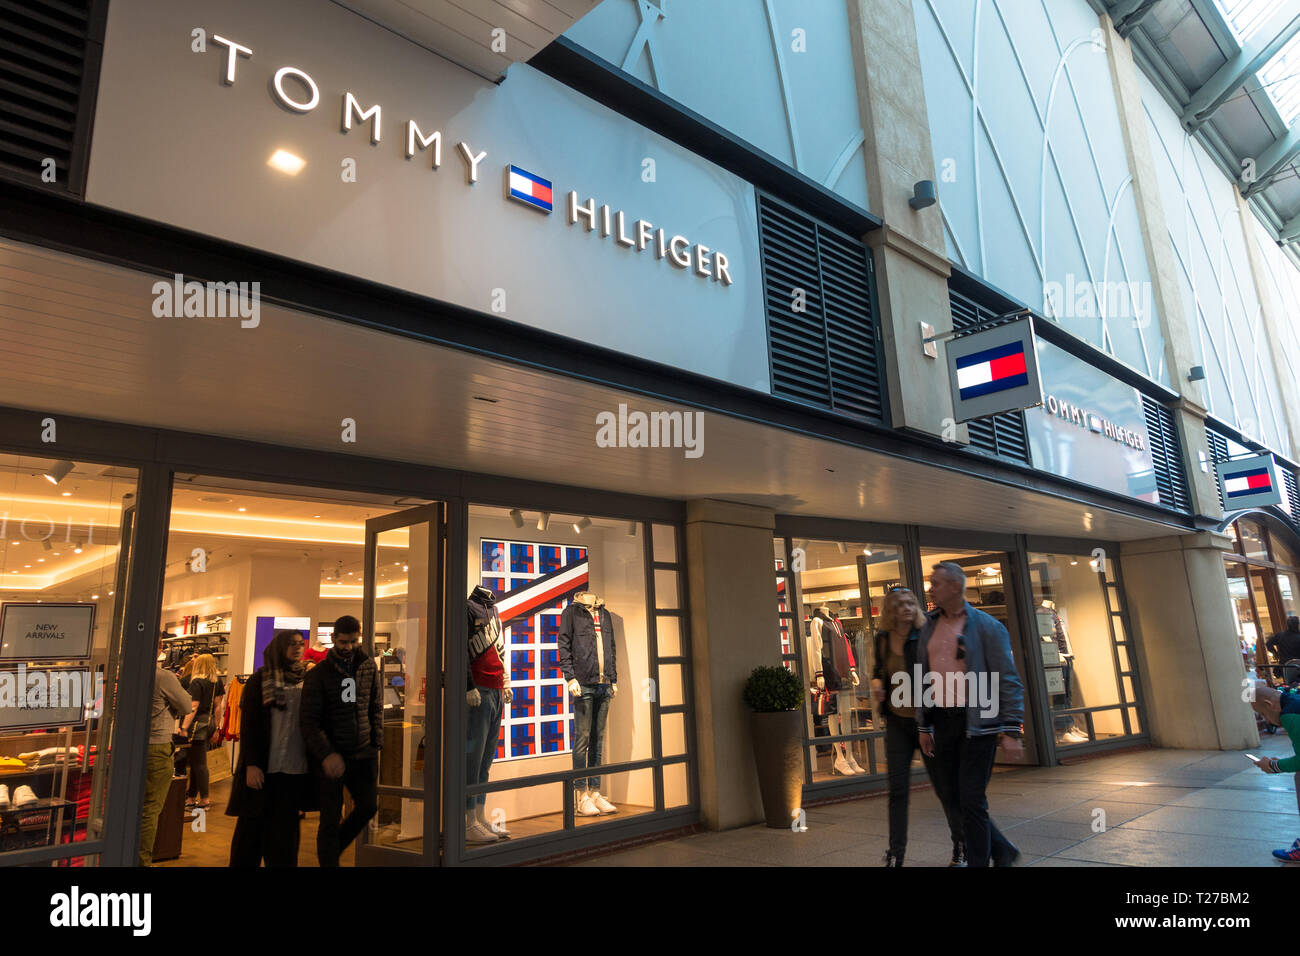 c31306e7b The Tommy Hilfiger clothes and fashion store in Gunwharf Quays in  Portsmouth